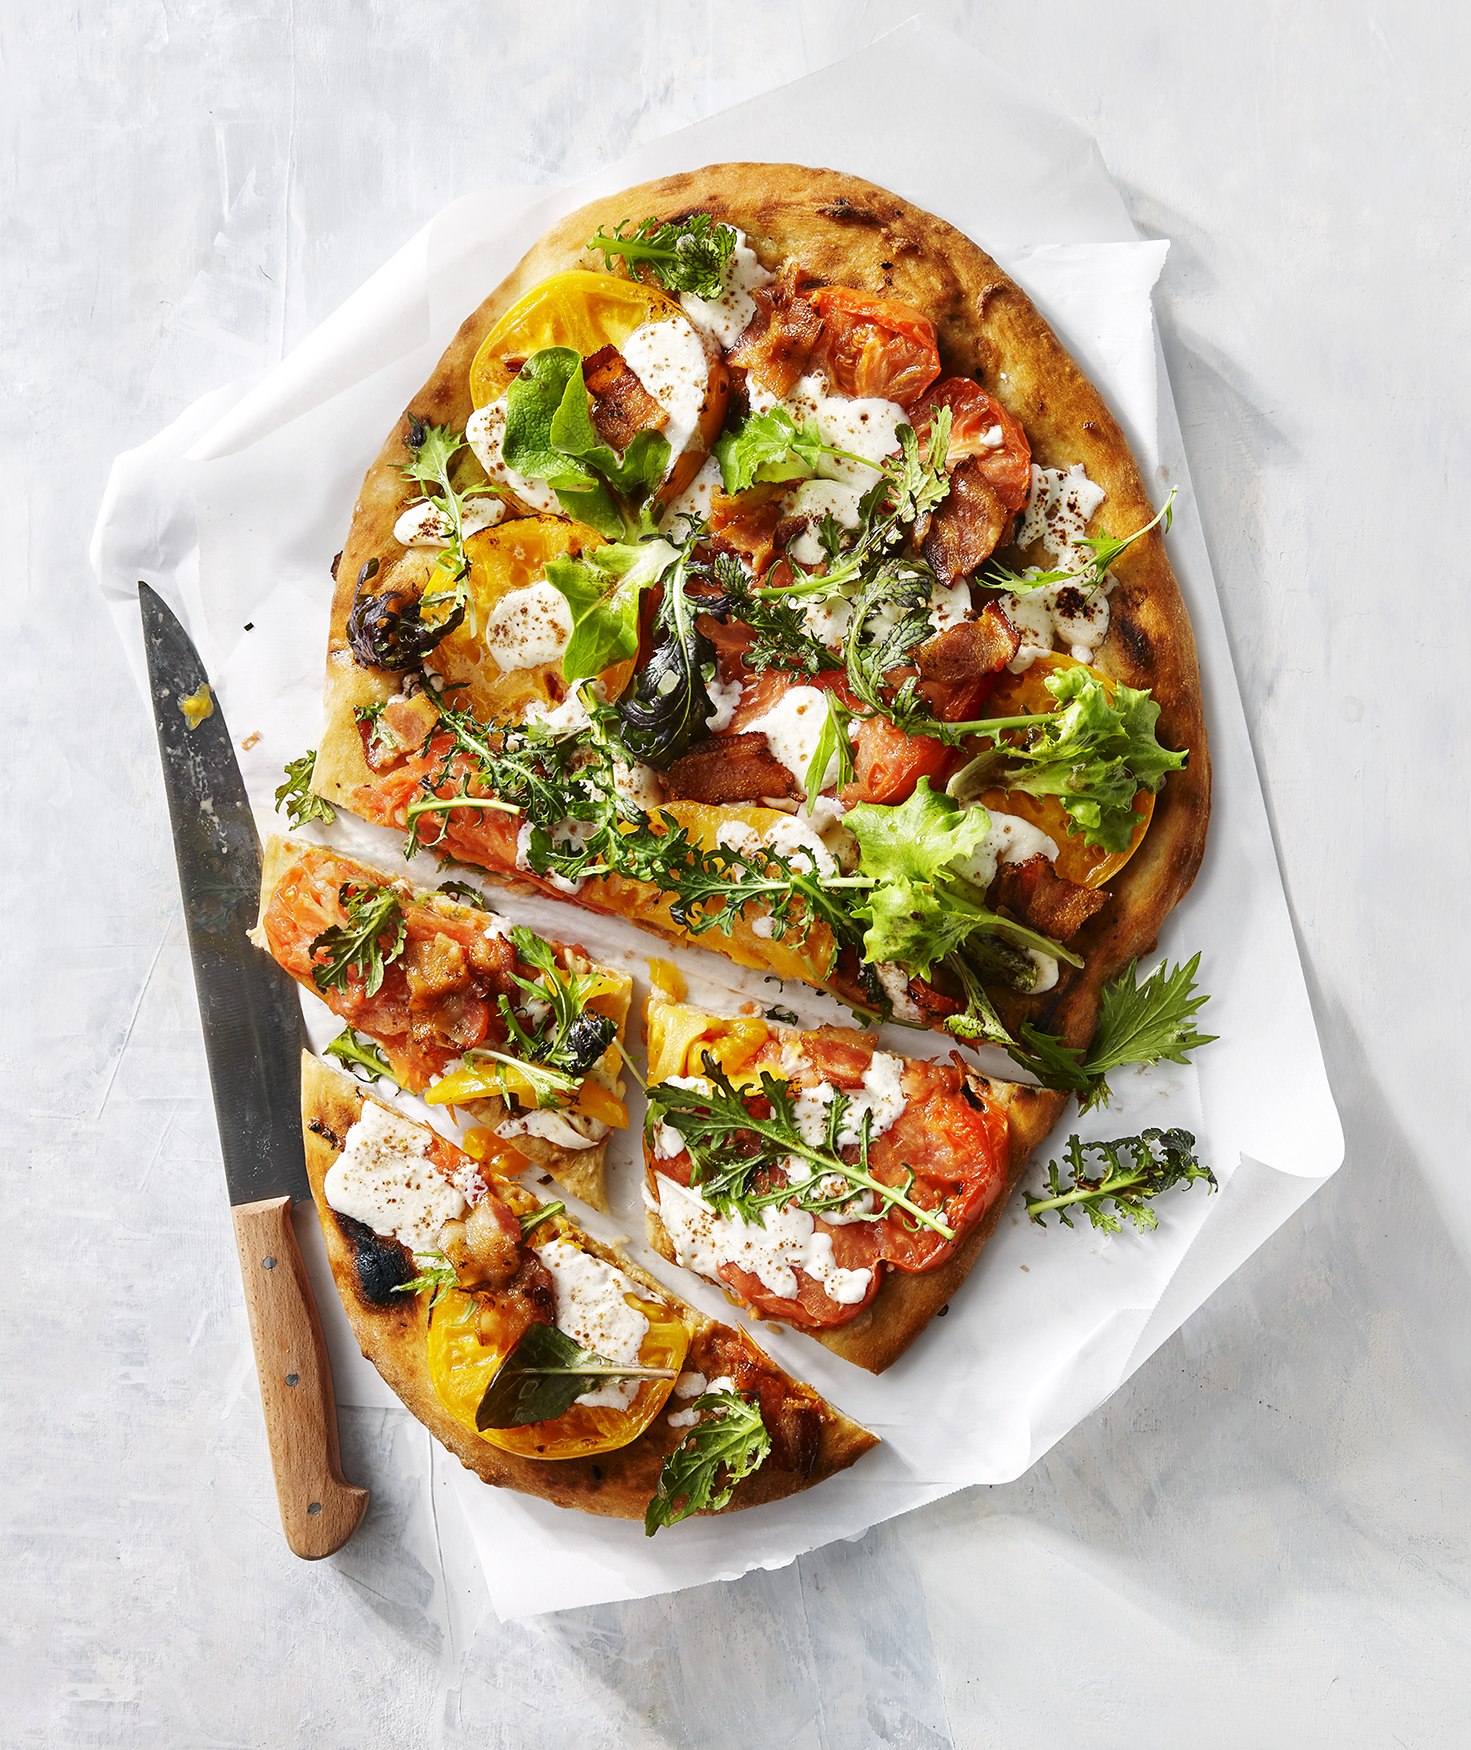 Tomato-and-Bacon Flatbread With Greens